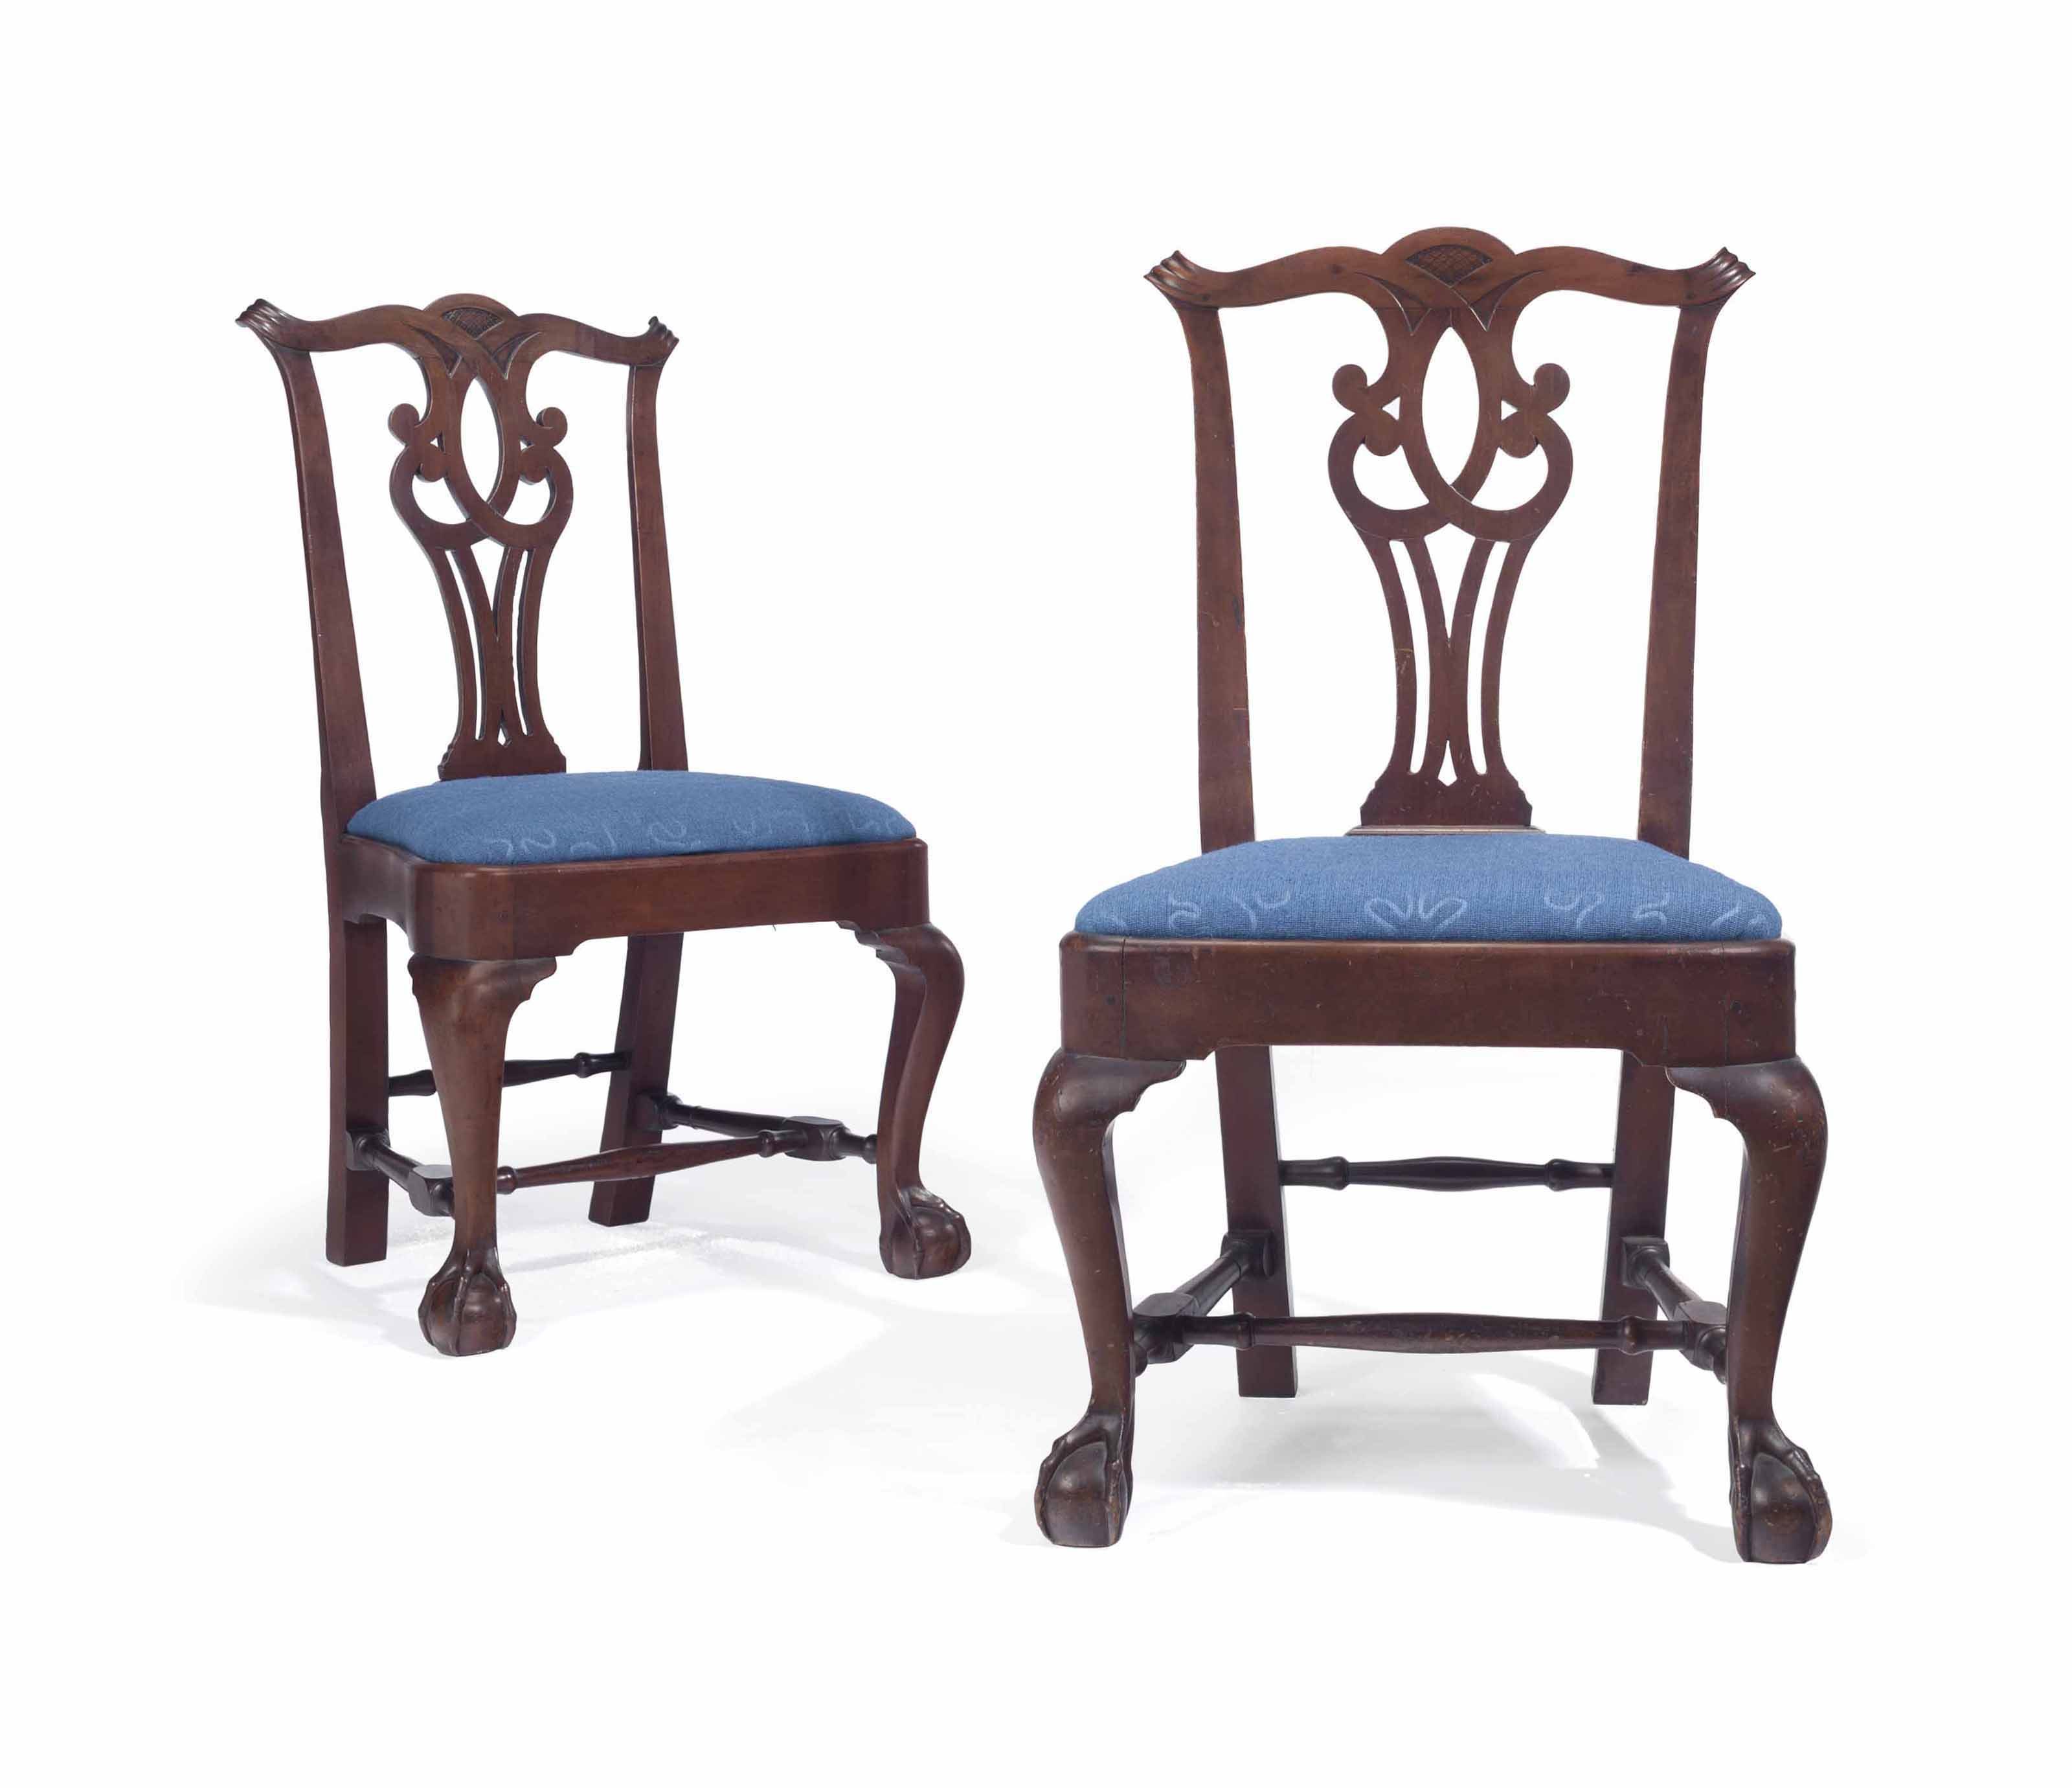 3200x2761 A Z Of Furniture Terminology To Know When Buying